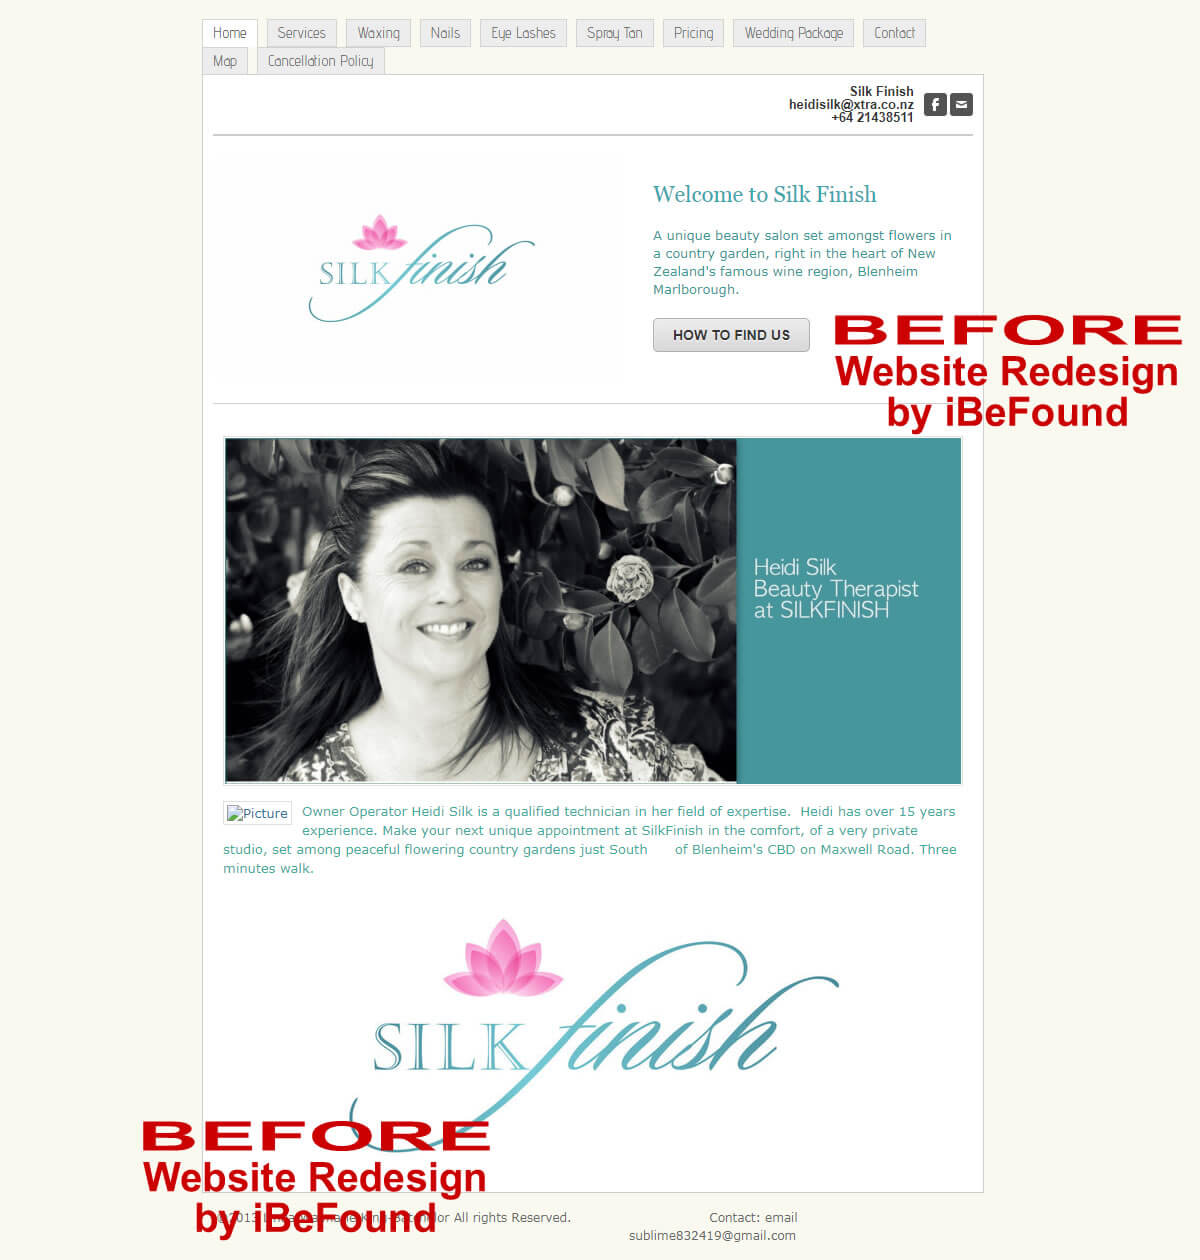 Homepage Of Silk Finish Beauty Salon Before Website Redesign By IBeFound Digital Marketing